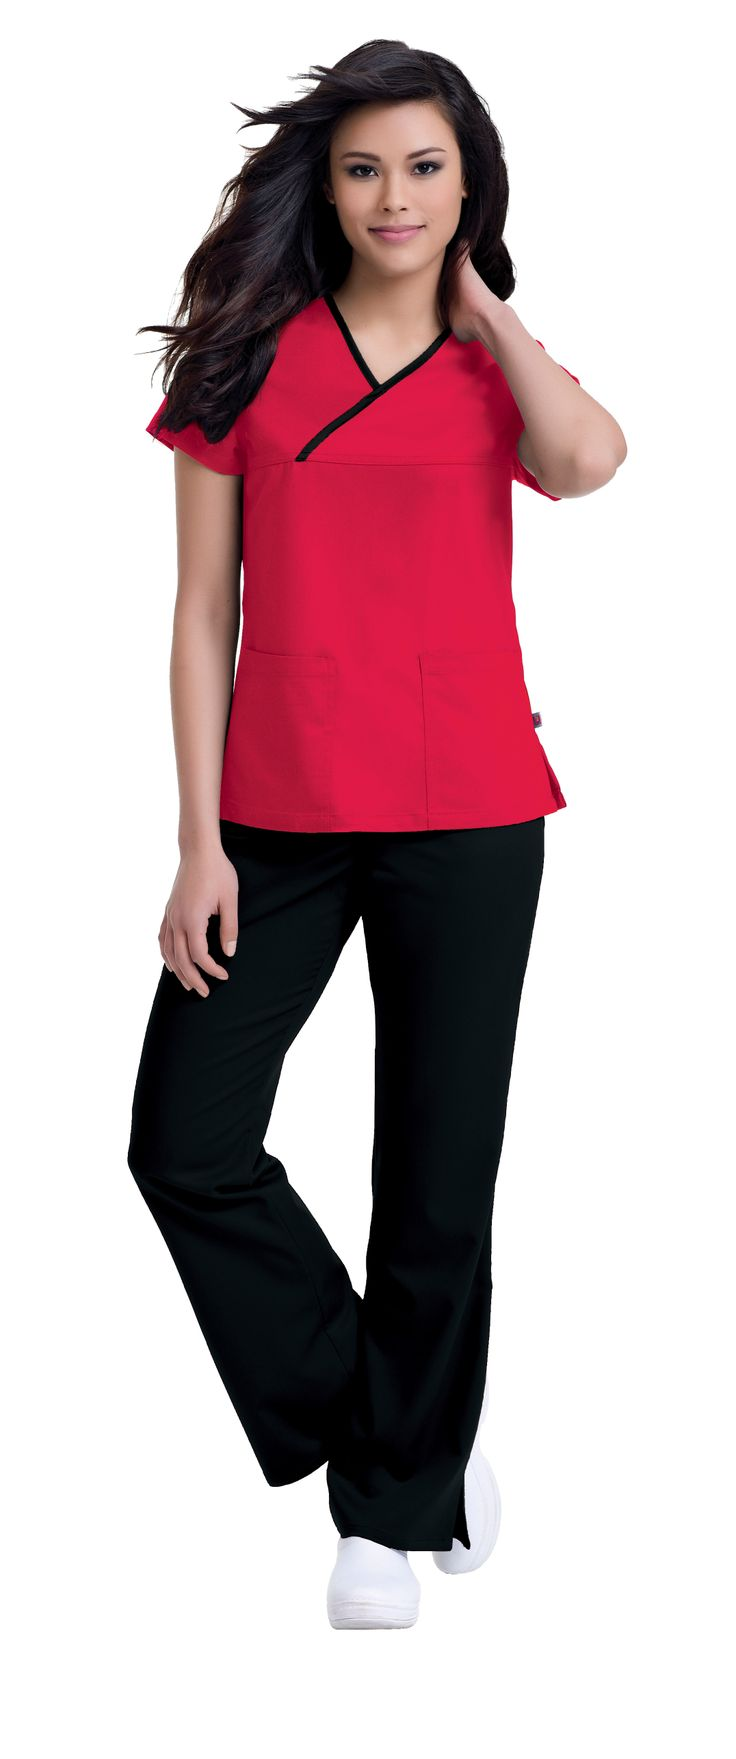 """Urbane Ultimate's 9407 """"Mandi"""" top is now avaiable in """"True Red""""! #urbane #scrubs #medical #uniforms #style #hospital #nurse #vet #tech #dental #health #red #pink #february #valentine"""